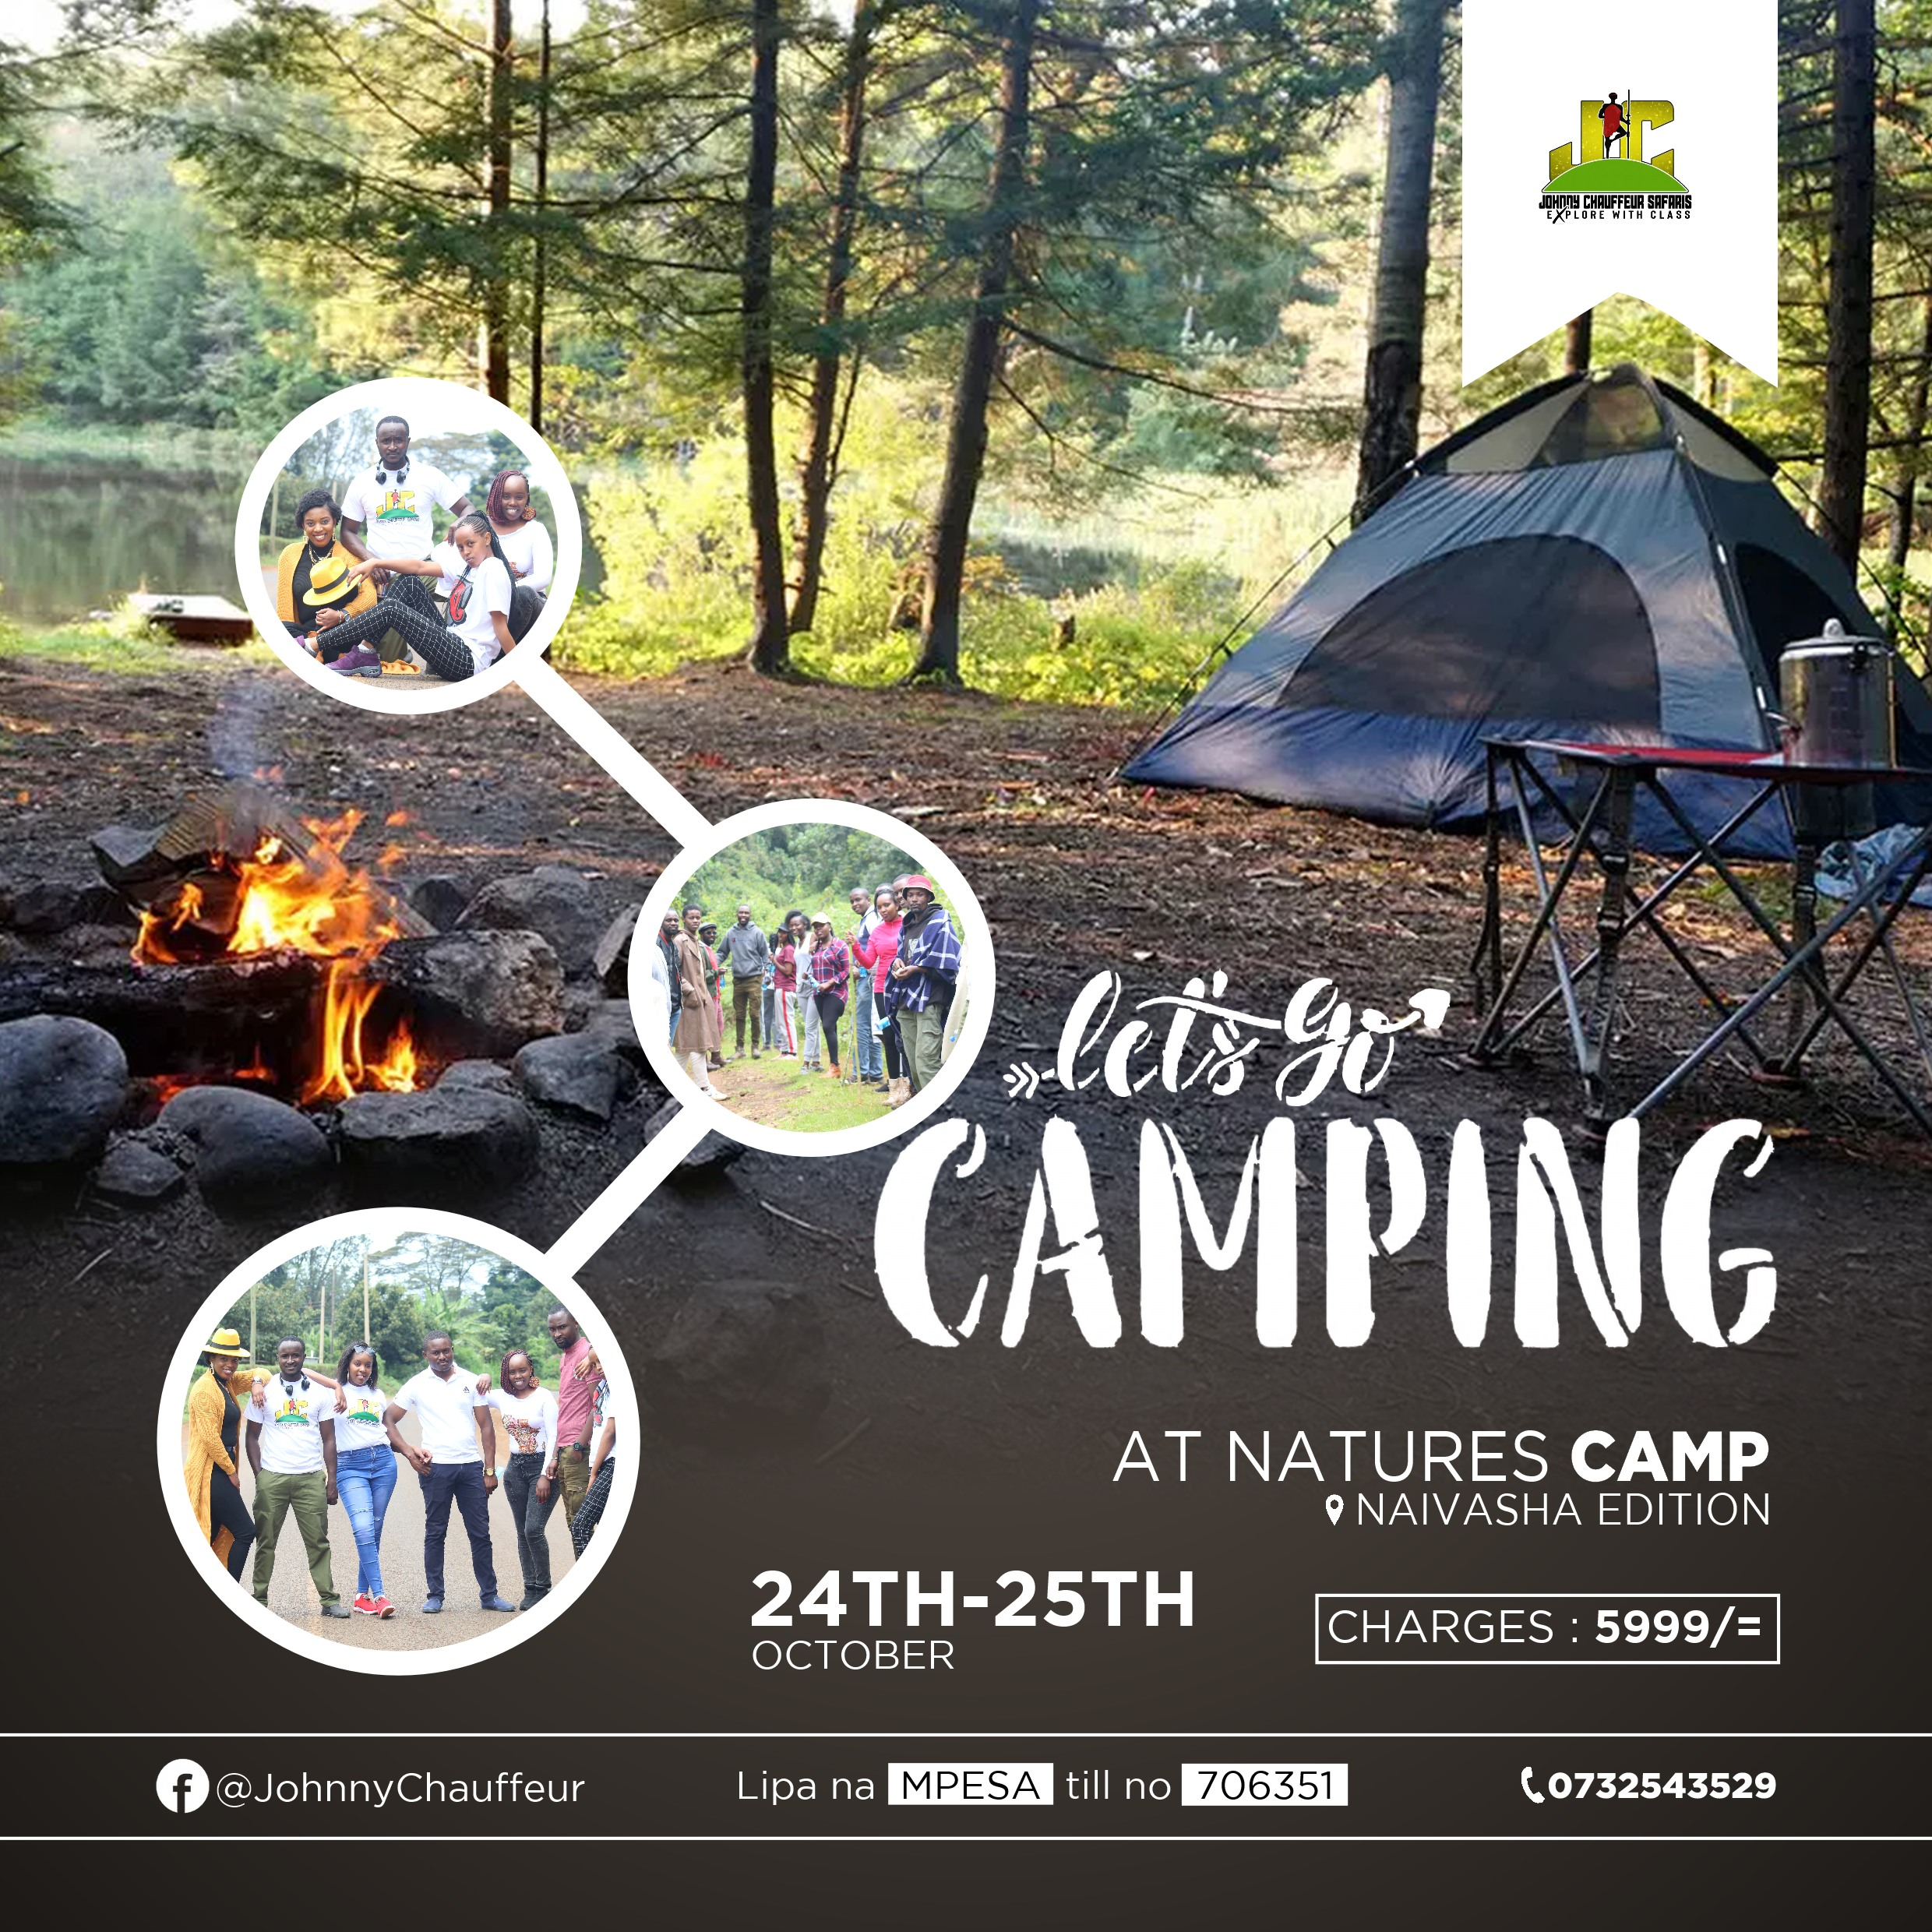 Natures Camp Naivasha Edition